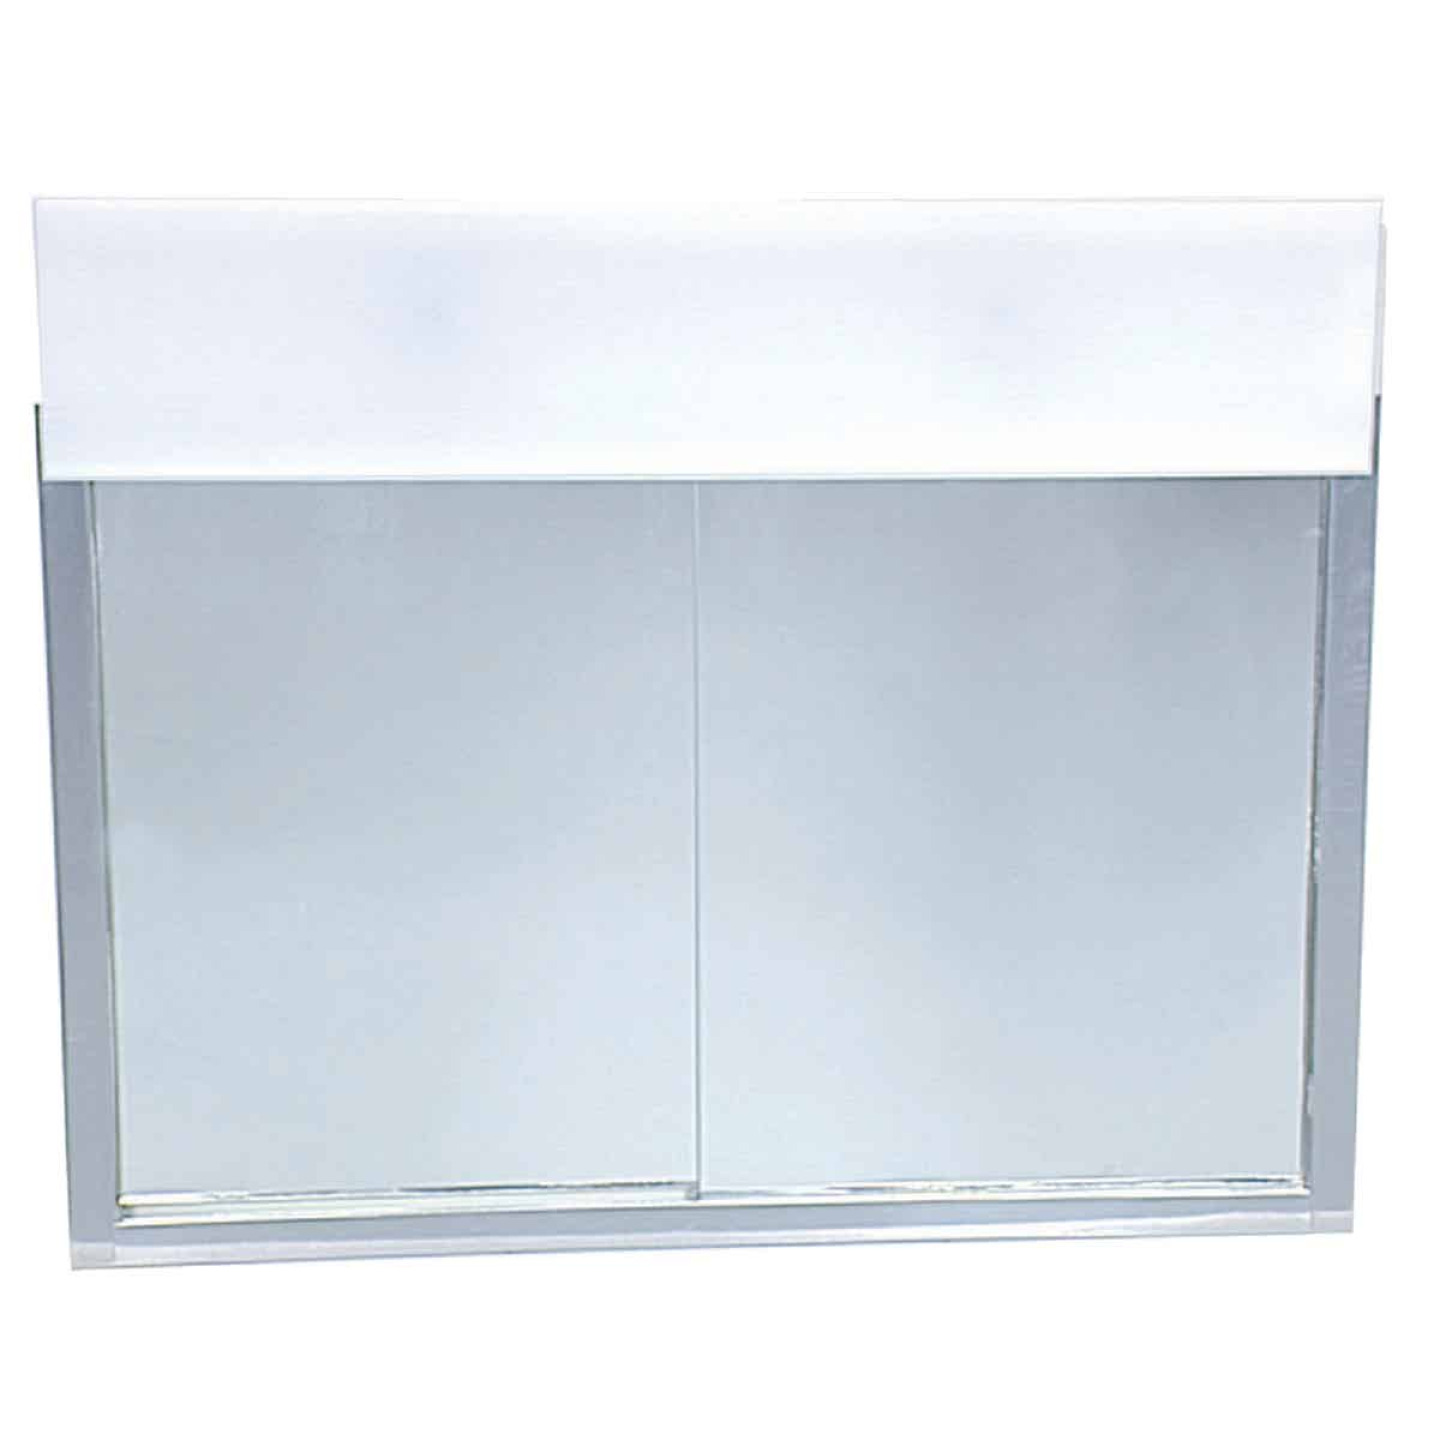 Zenith Stainless Steel 23.5 In. W x 18.5 In. H x 5.5 In. D Bi-View Surface Mount Lighted Medicine Cabinet Image 1